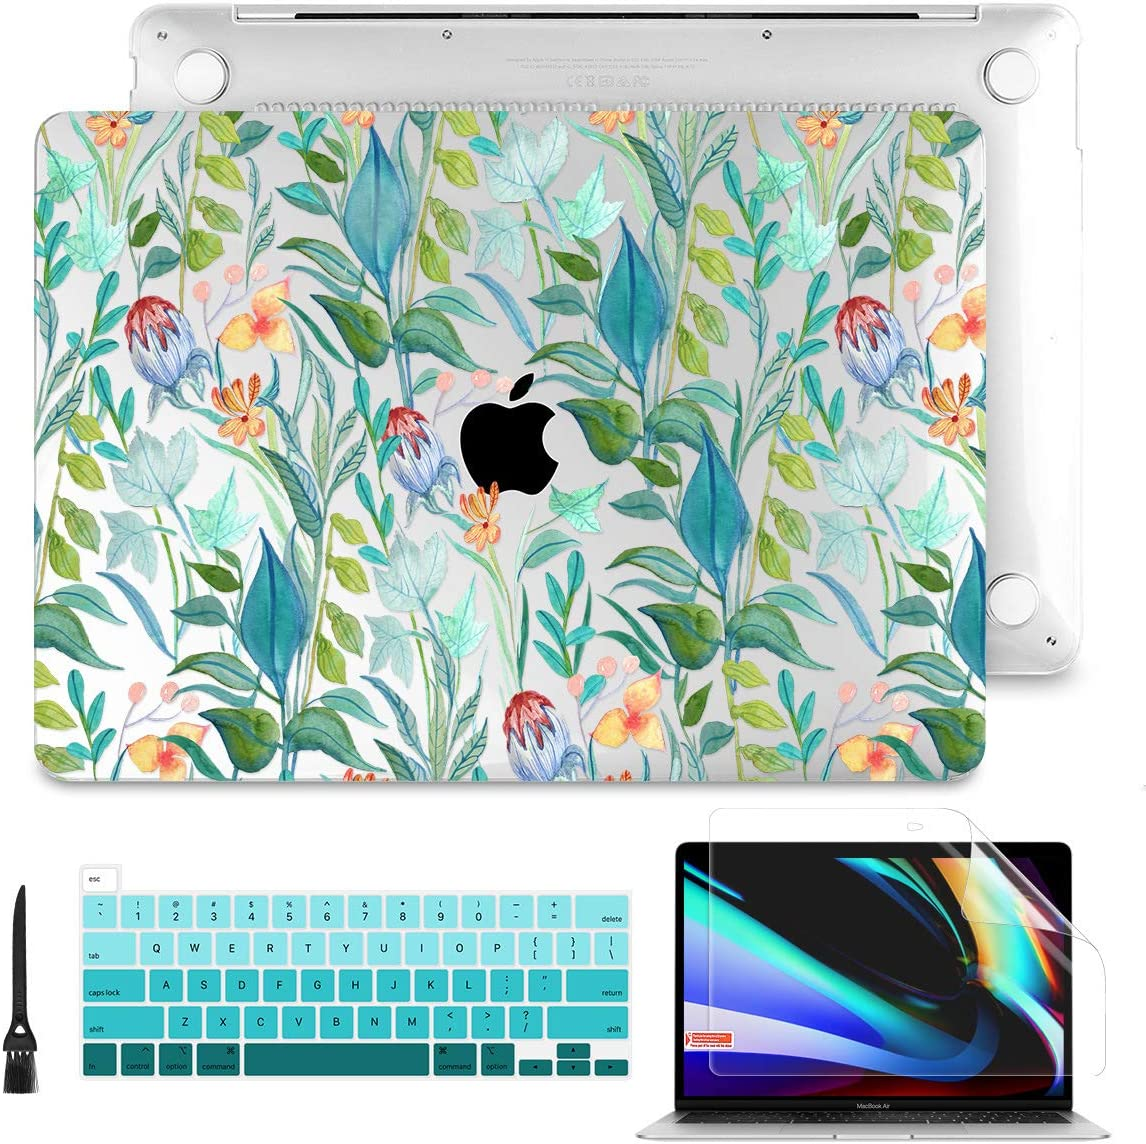 """Batianda Laptop Case for MacBook Pro 13"""" 2020 Rlease Plastice Hard Shell Cover with Keyboard Cover and Screen Protector Model A2289/A2251,Green Plant"""